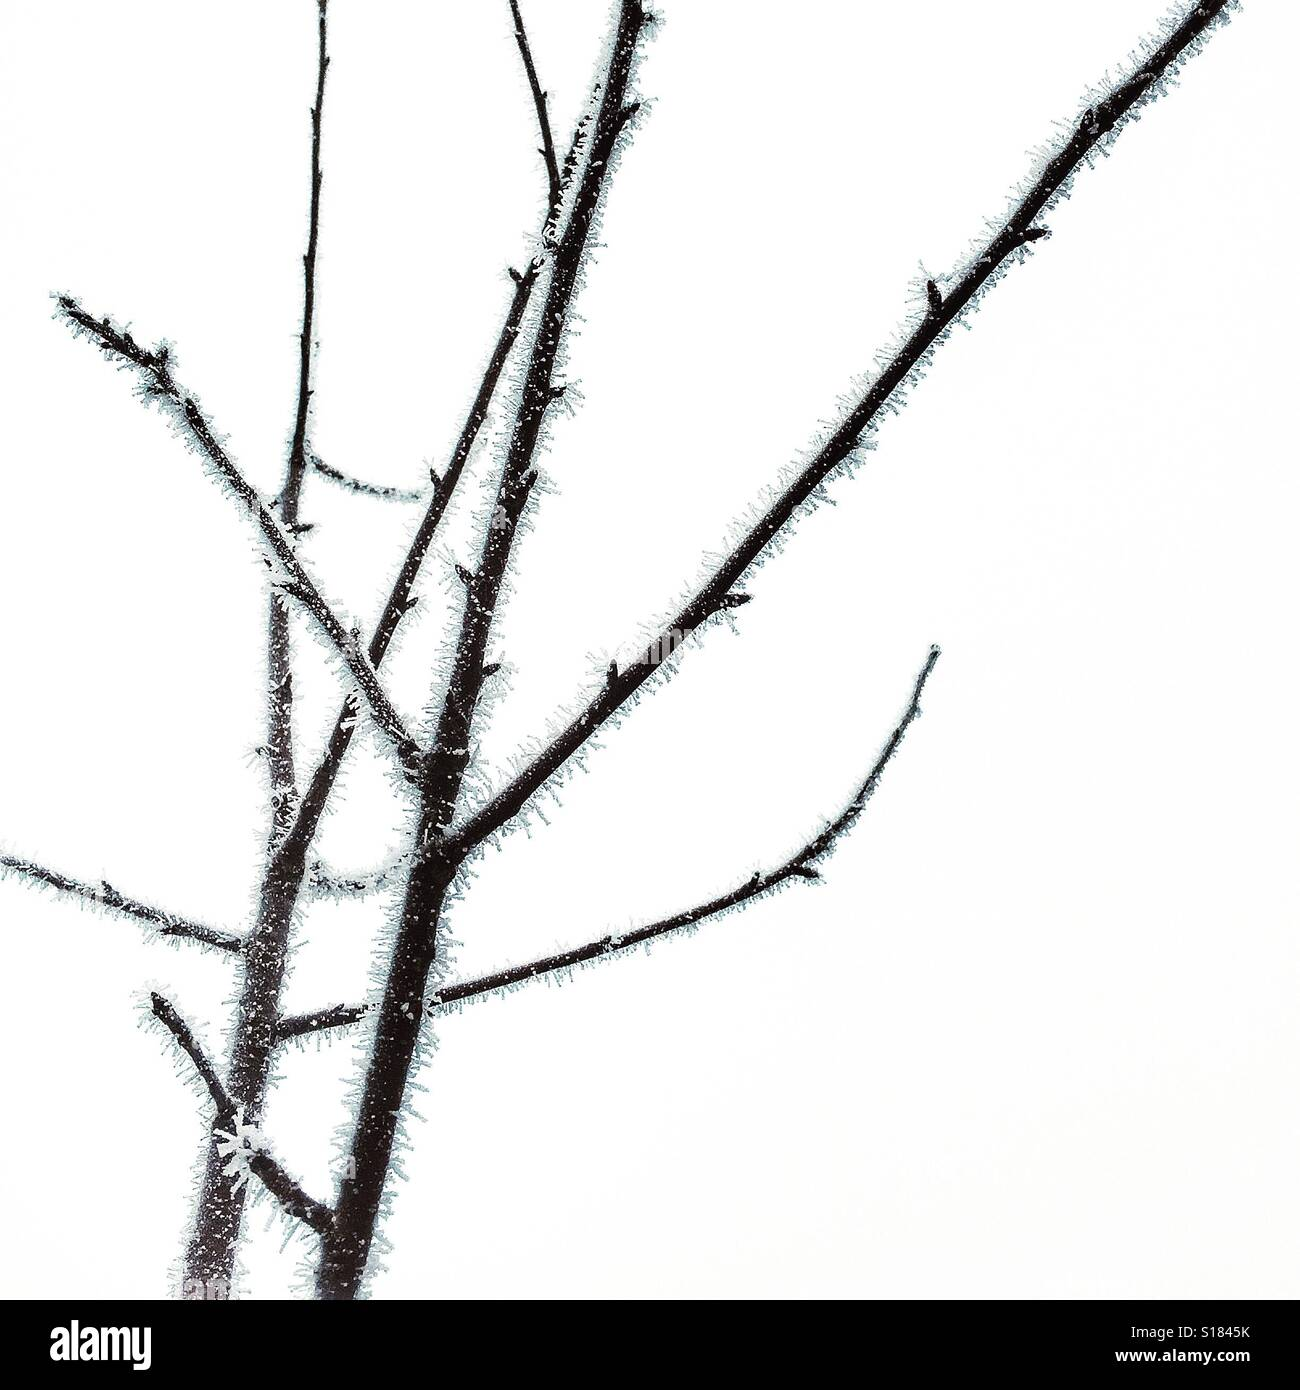 Silhouetted tree branches bristling with frost - Stock Image